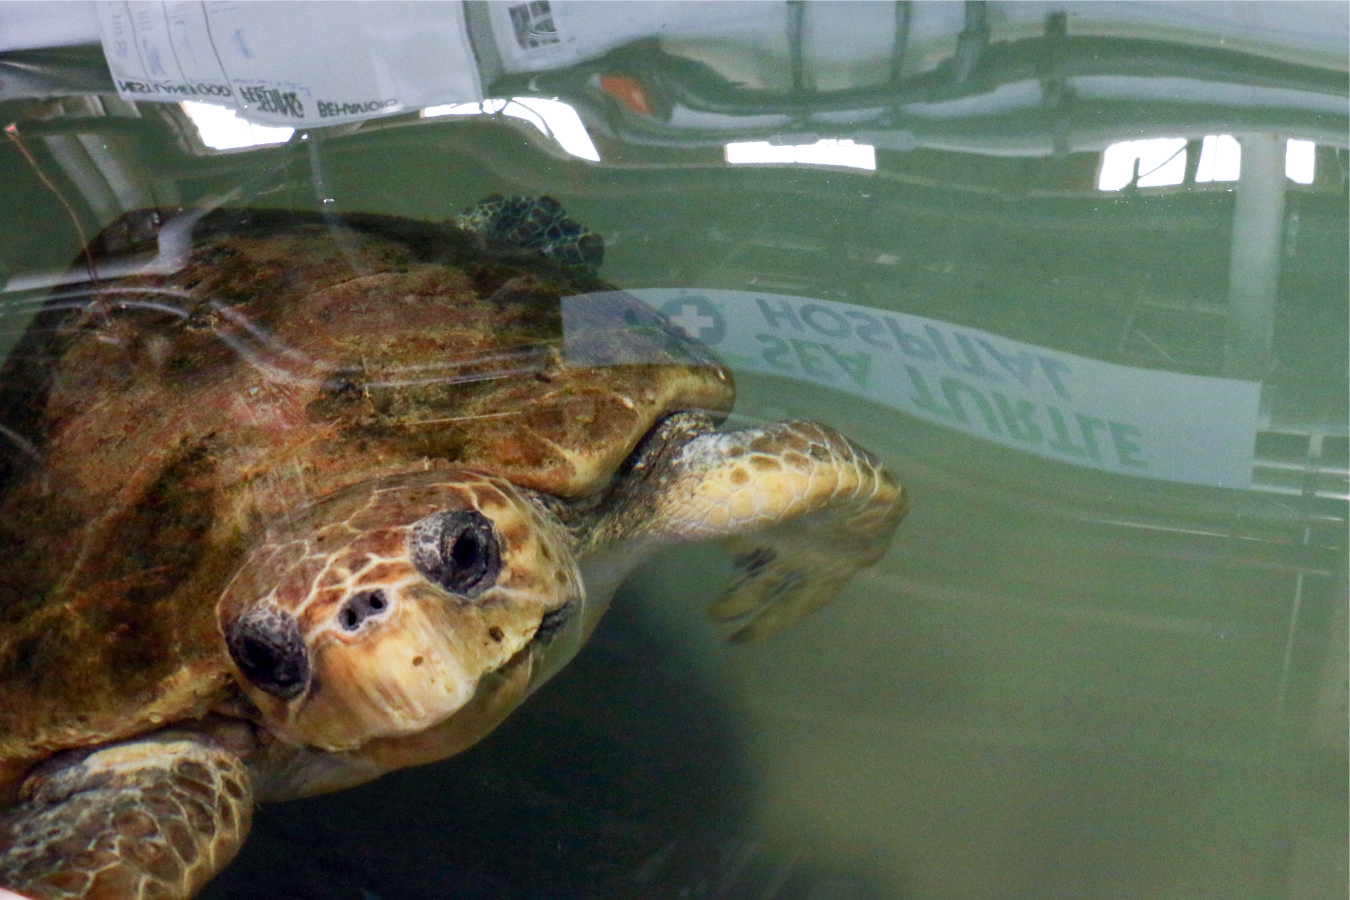 Munchkin the loggerhead sea turtle at the Quincy Animal Care Center